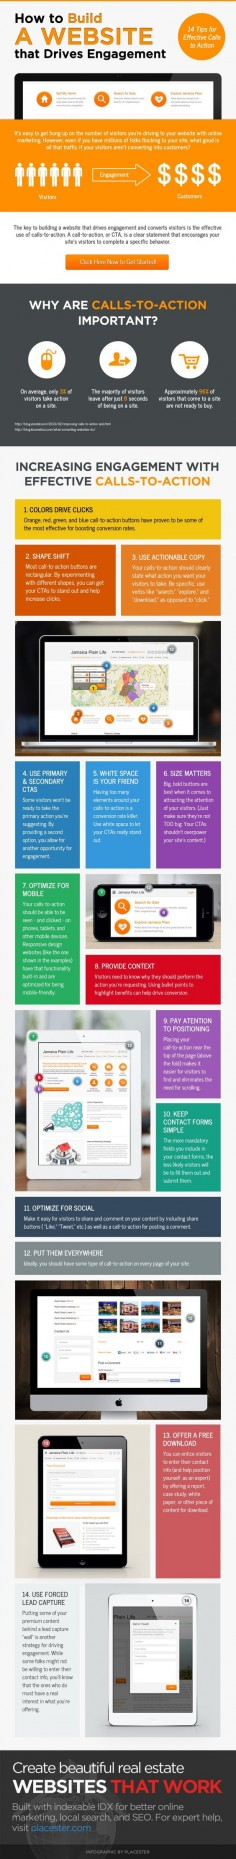 Creating Website Calls-to-Action That Build Your Real Estate Business [Infographic] | Inman News